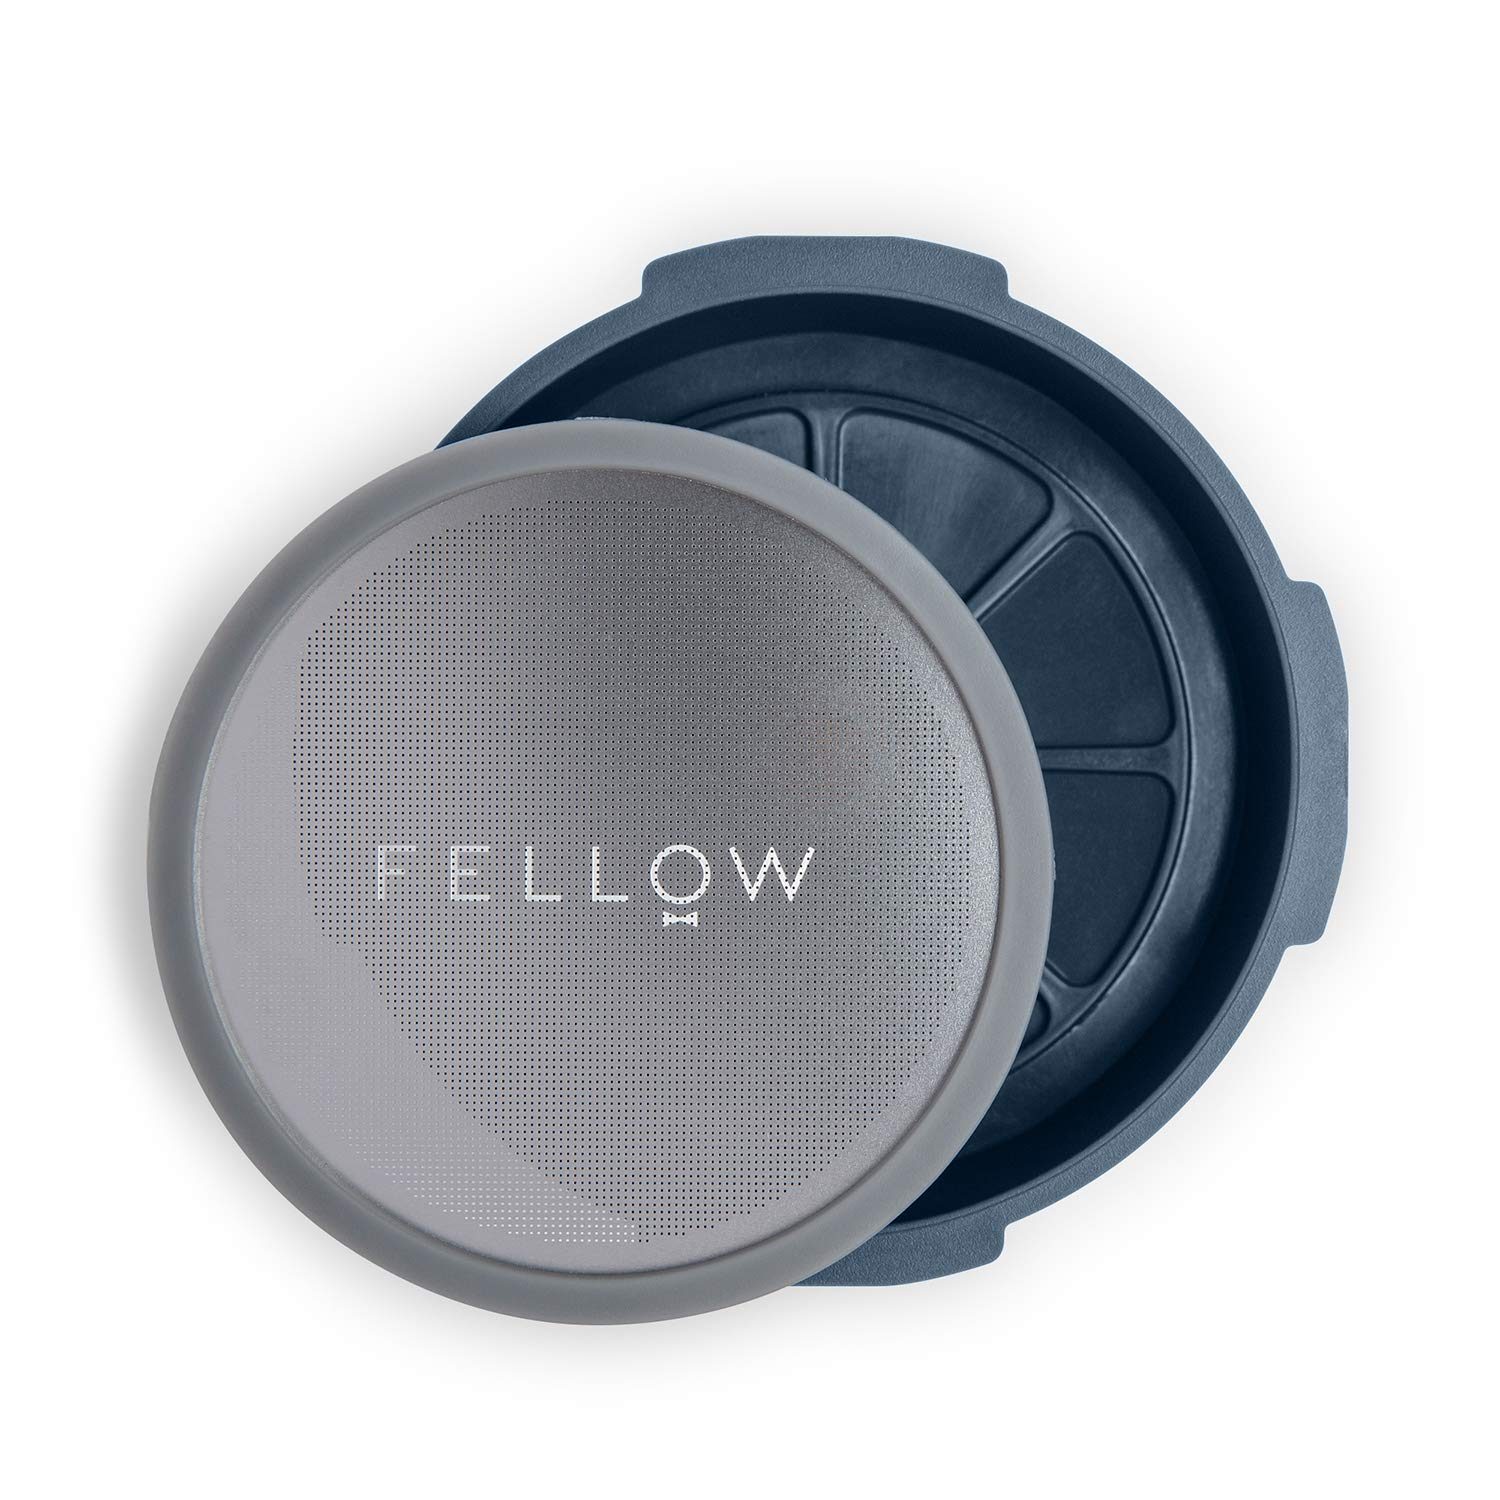 Fellow Reusable Filter and Pressure-Operated Accessories for The Aeropress Coffee Machine with Espresso Style, drip-Free Immersion and Cold Preparation at Home. Stone Blue